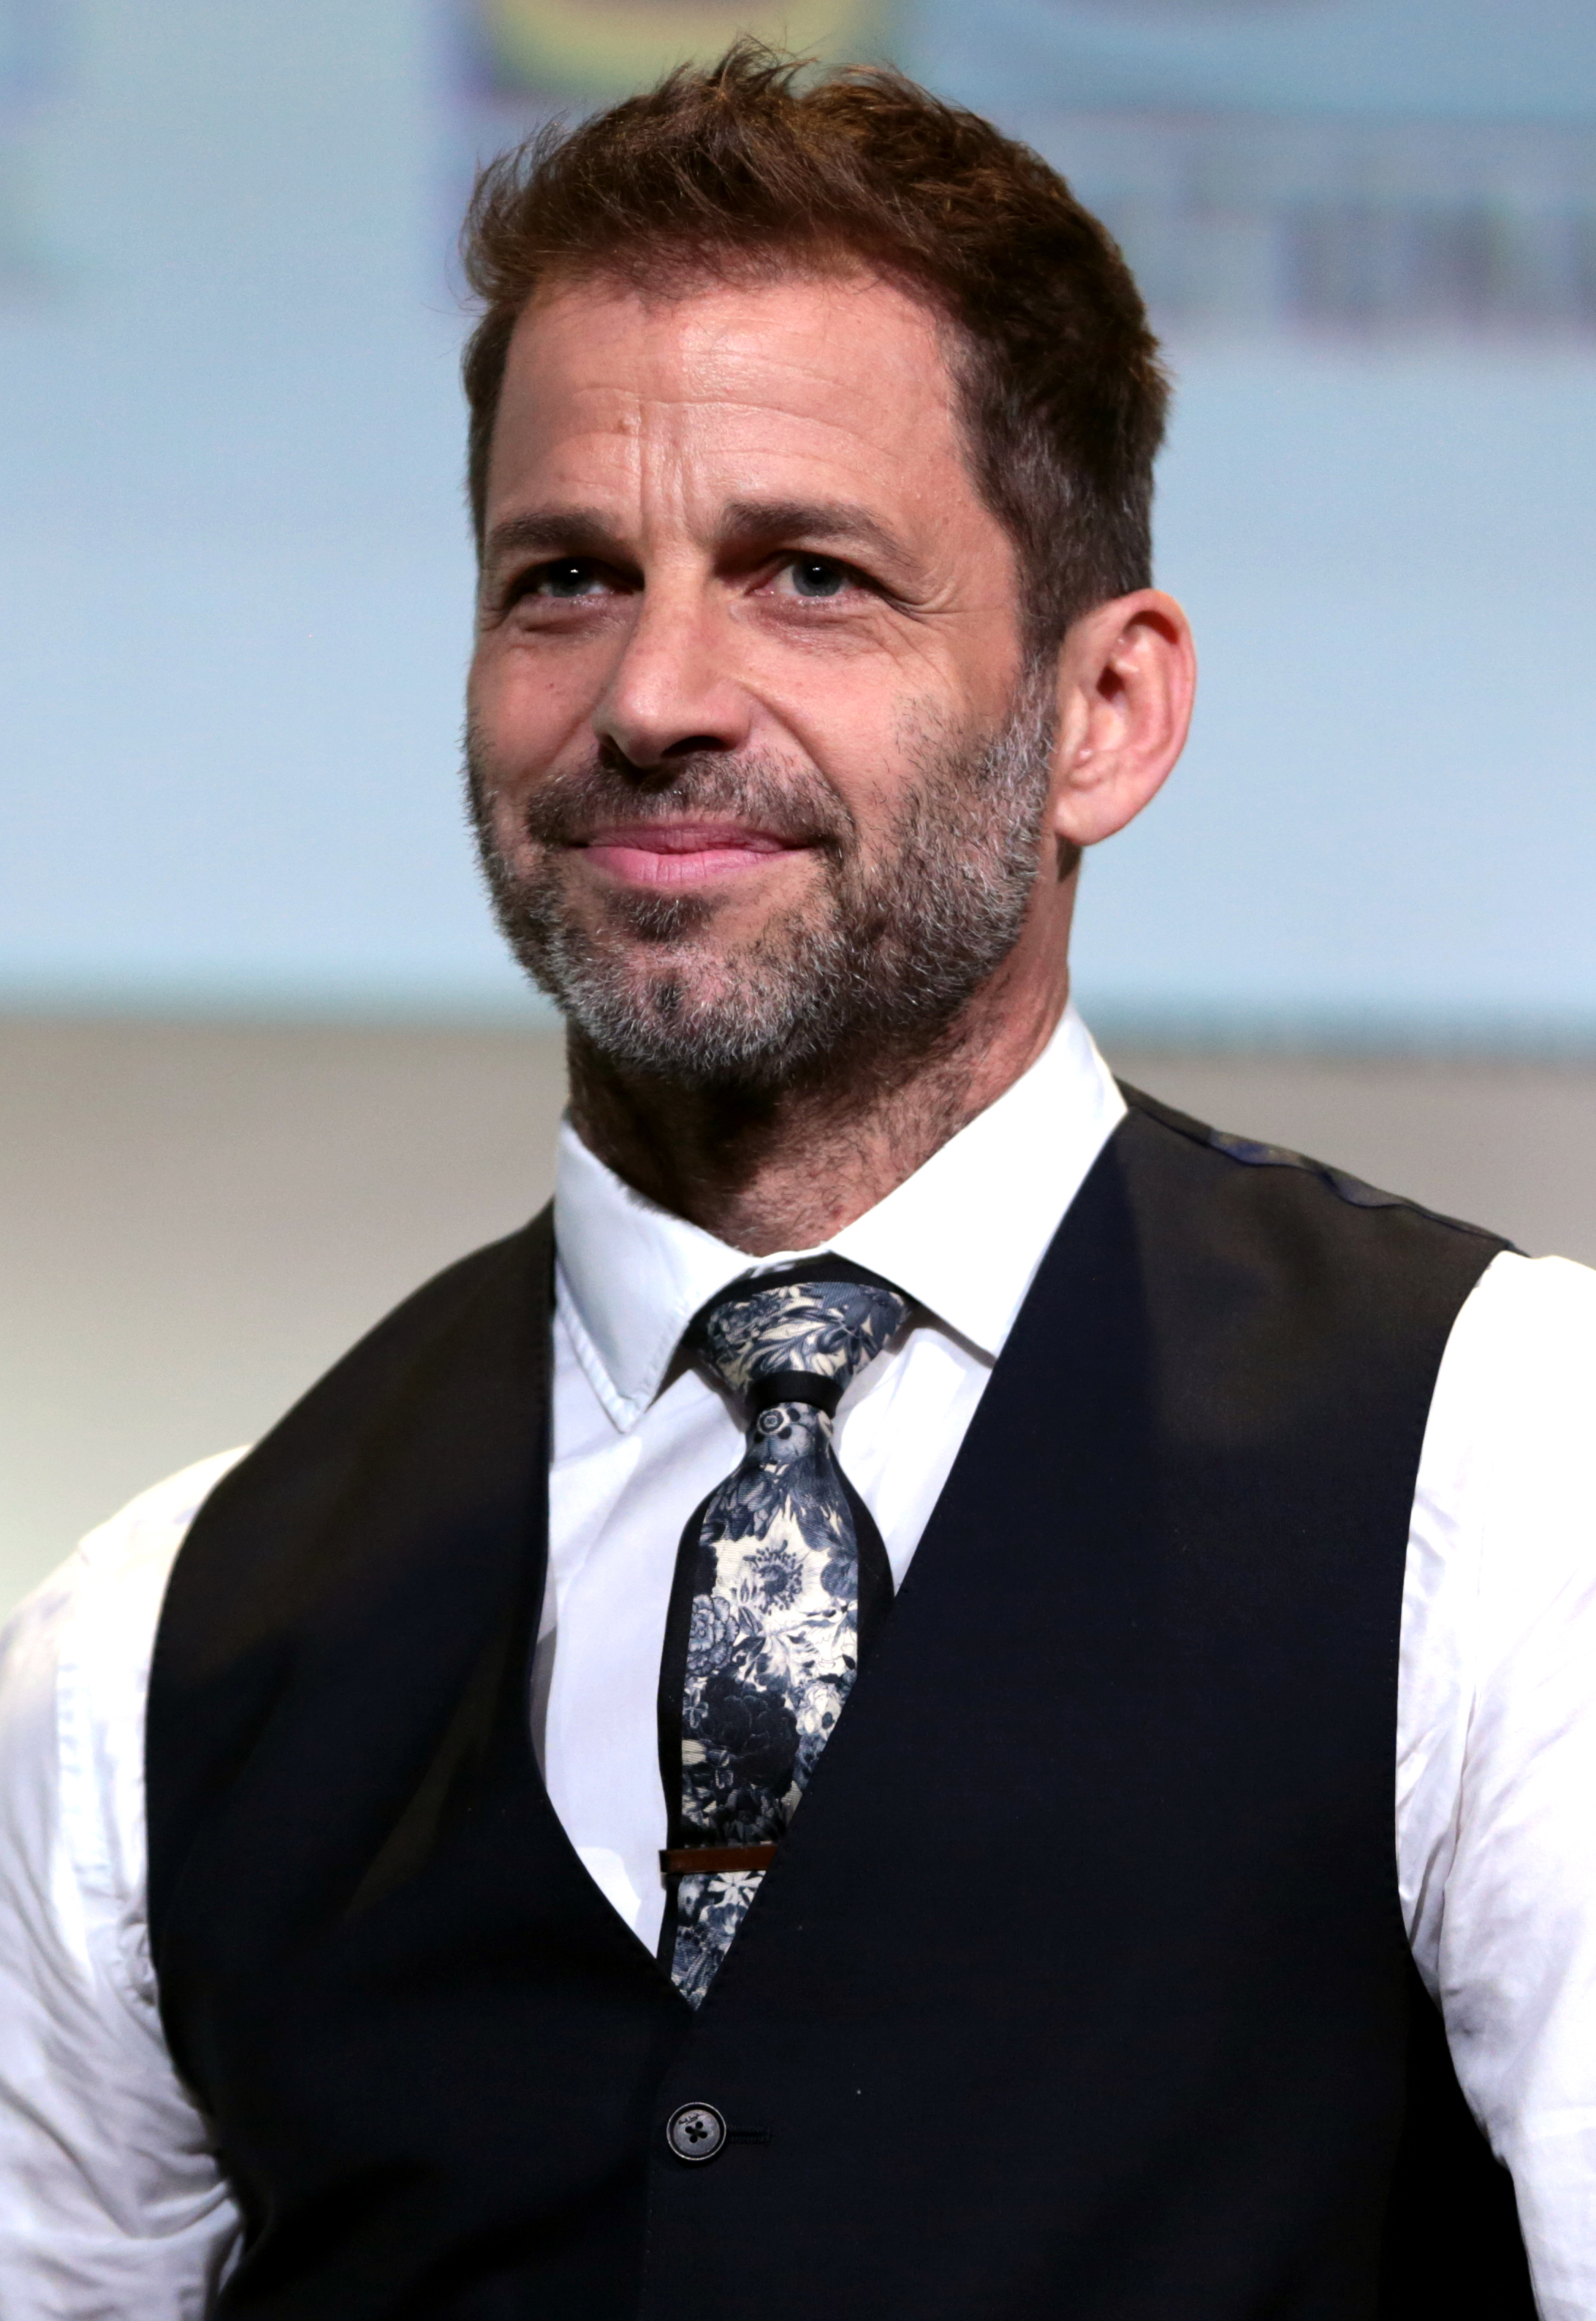 Snyder at the 2016 [[San Diego Comic-Con International]]